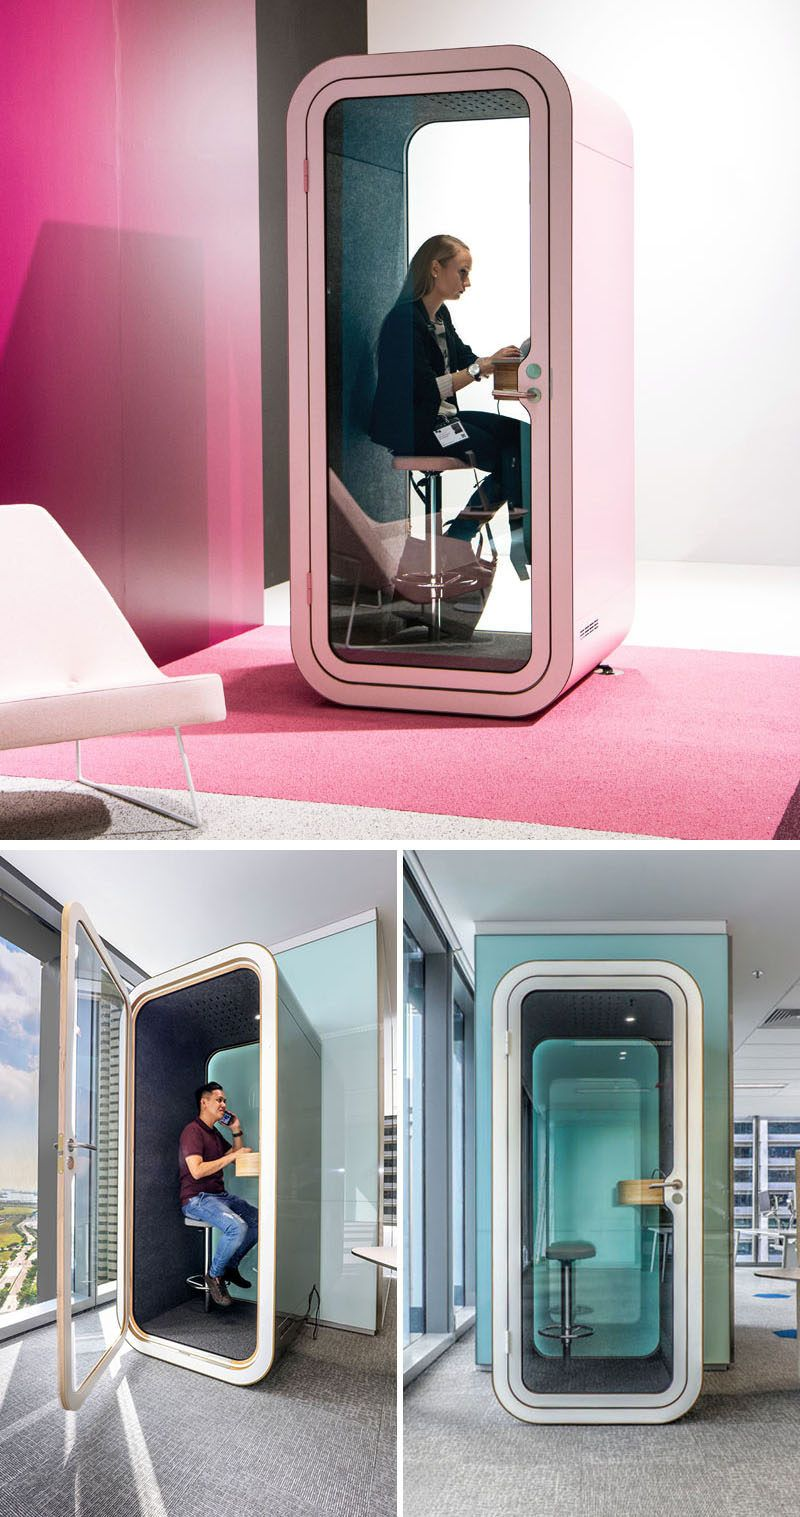 soundproofing office space. Framery, A Finnish Technology Startup, Designs And Manufactures Stylish Soundproof Phone Booths Meeting Soundproofing Office Space